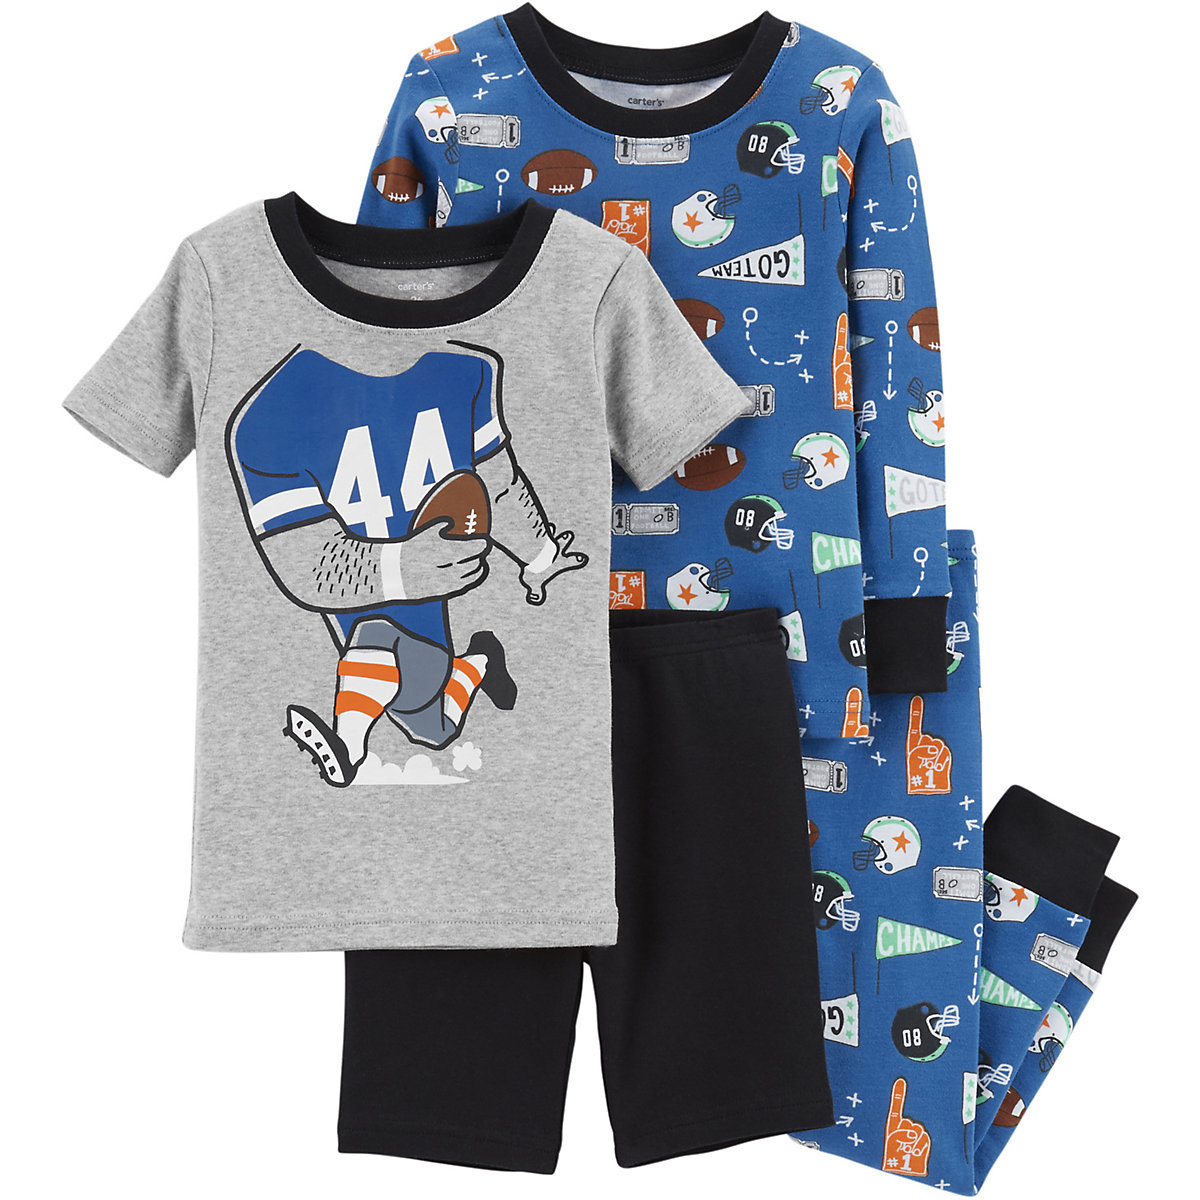 Carter's Pajama Sets 10267034 pajamas for girls baby clothes for sleeping girl new year family christmas pajamas costumes infant toddler baby girls christmas dress outfits girl party dress baby rompers